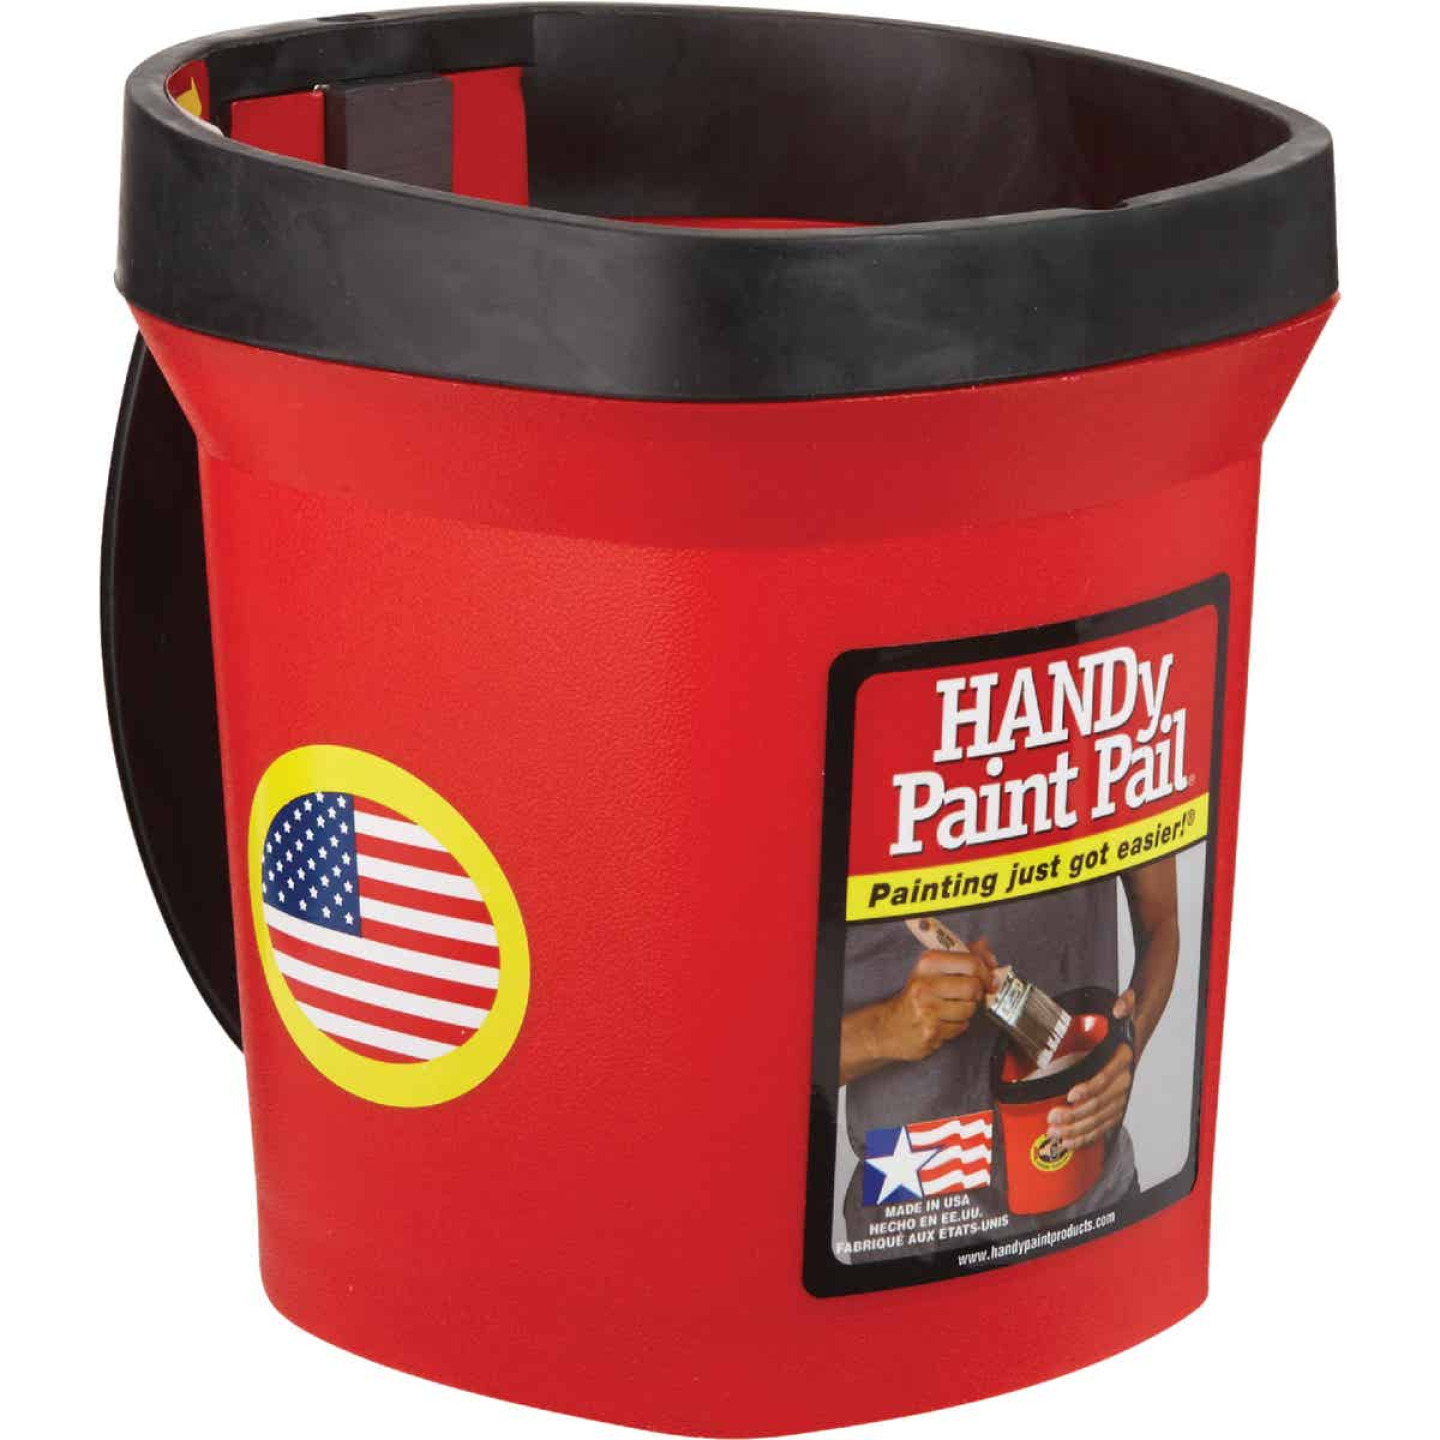 HANDy Paint Pail 1 Qt. Red Painter's Bucket w/Adjustable Strap And Magnetic Brush Holder Image 1